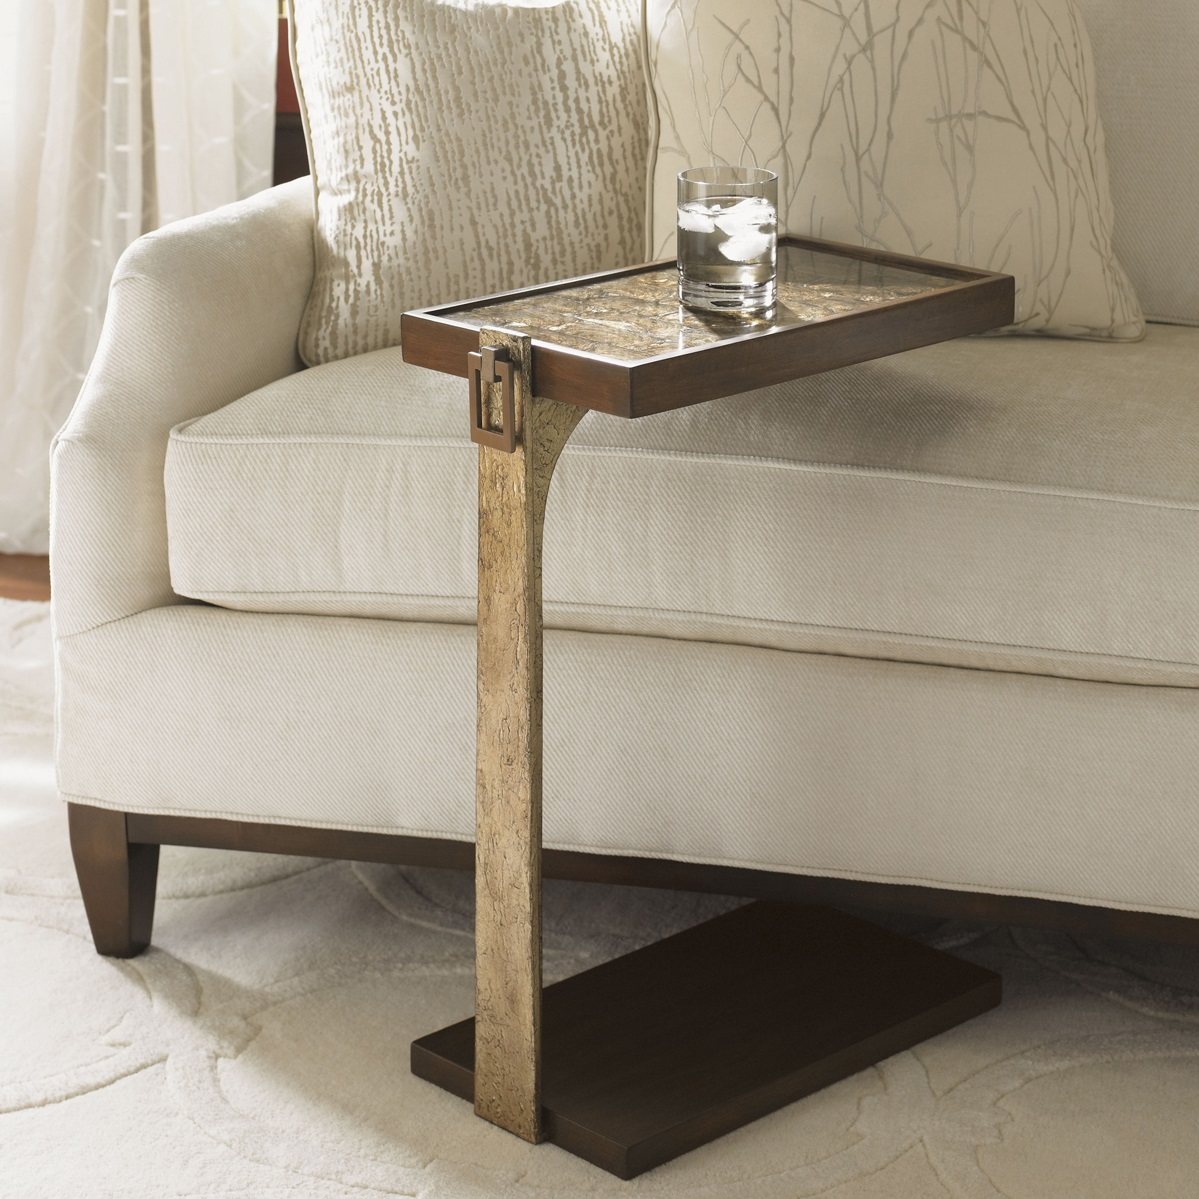 sofa end tables table plans accent modern slide under the side dimensions dolphin home decor antique coffee round glass and console bluestone parsons rustic wood dining room